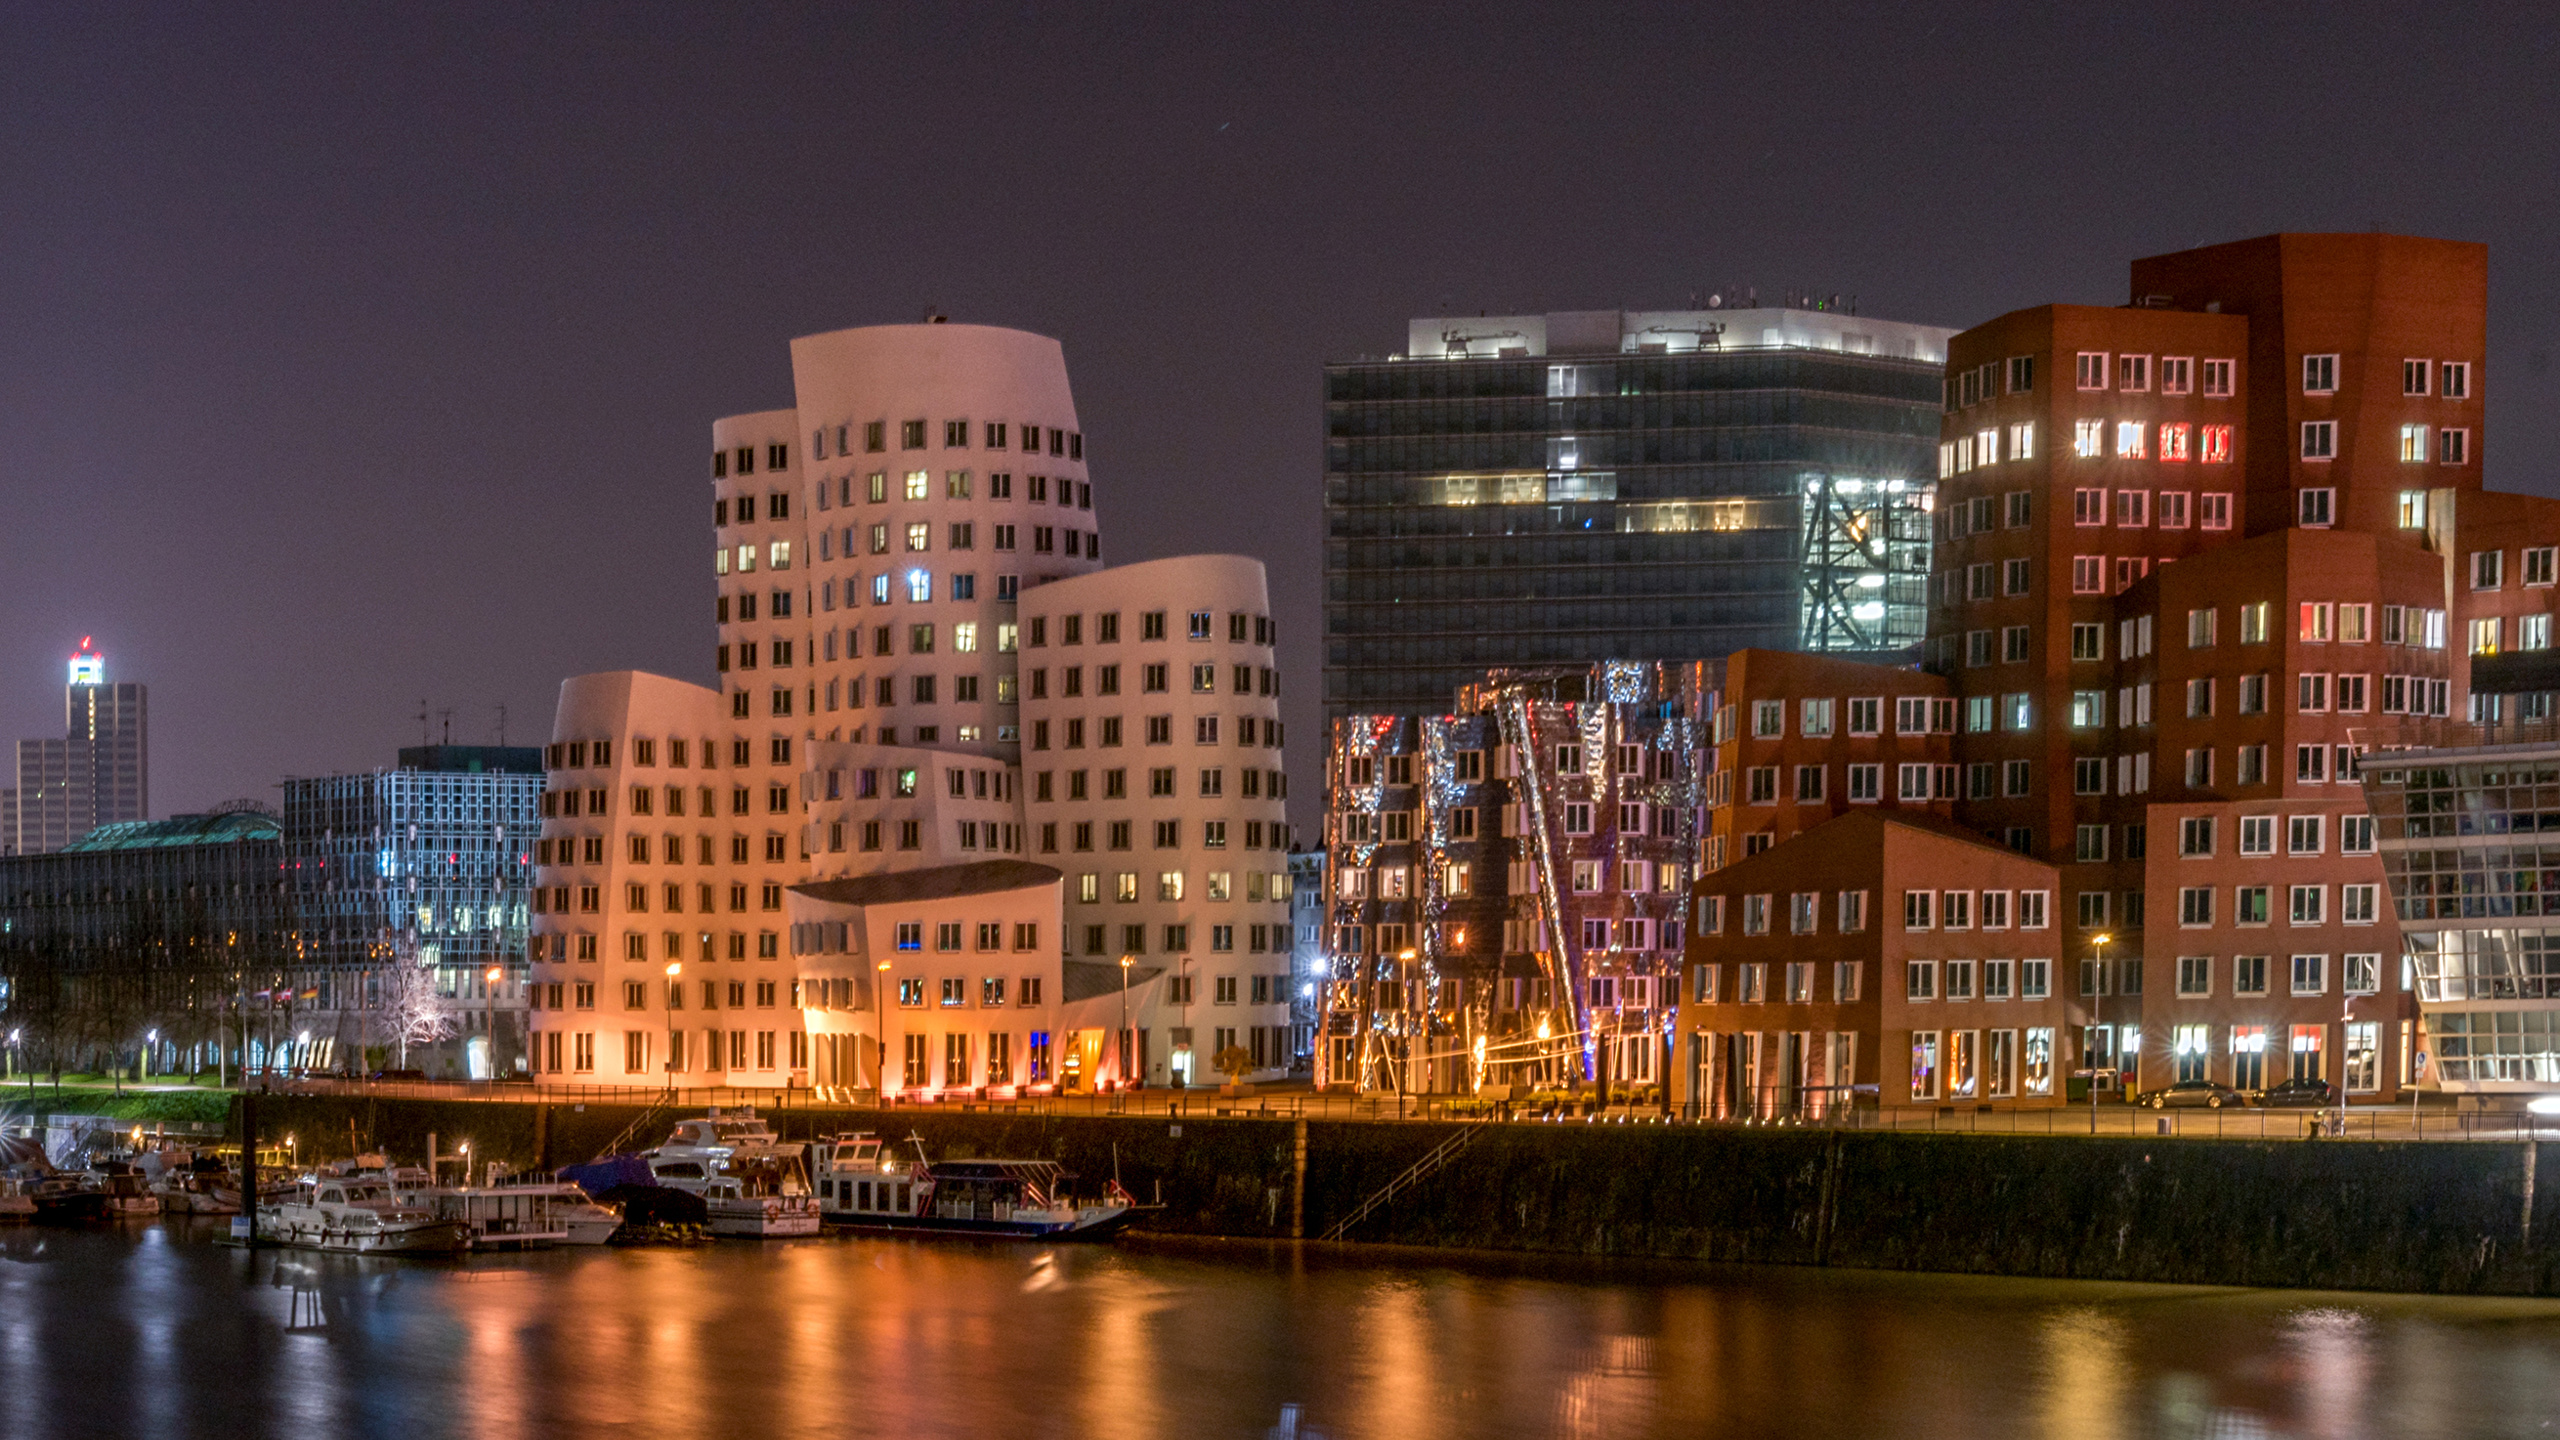 Image Germany Dusseldorf Night Berth Rivers Cities Houses 2560x1440